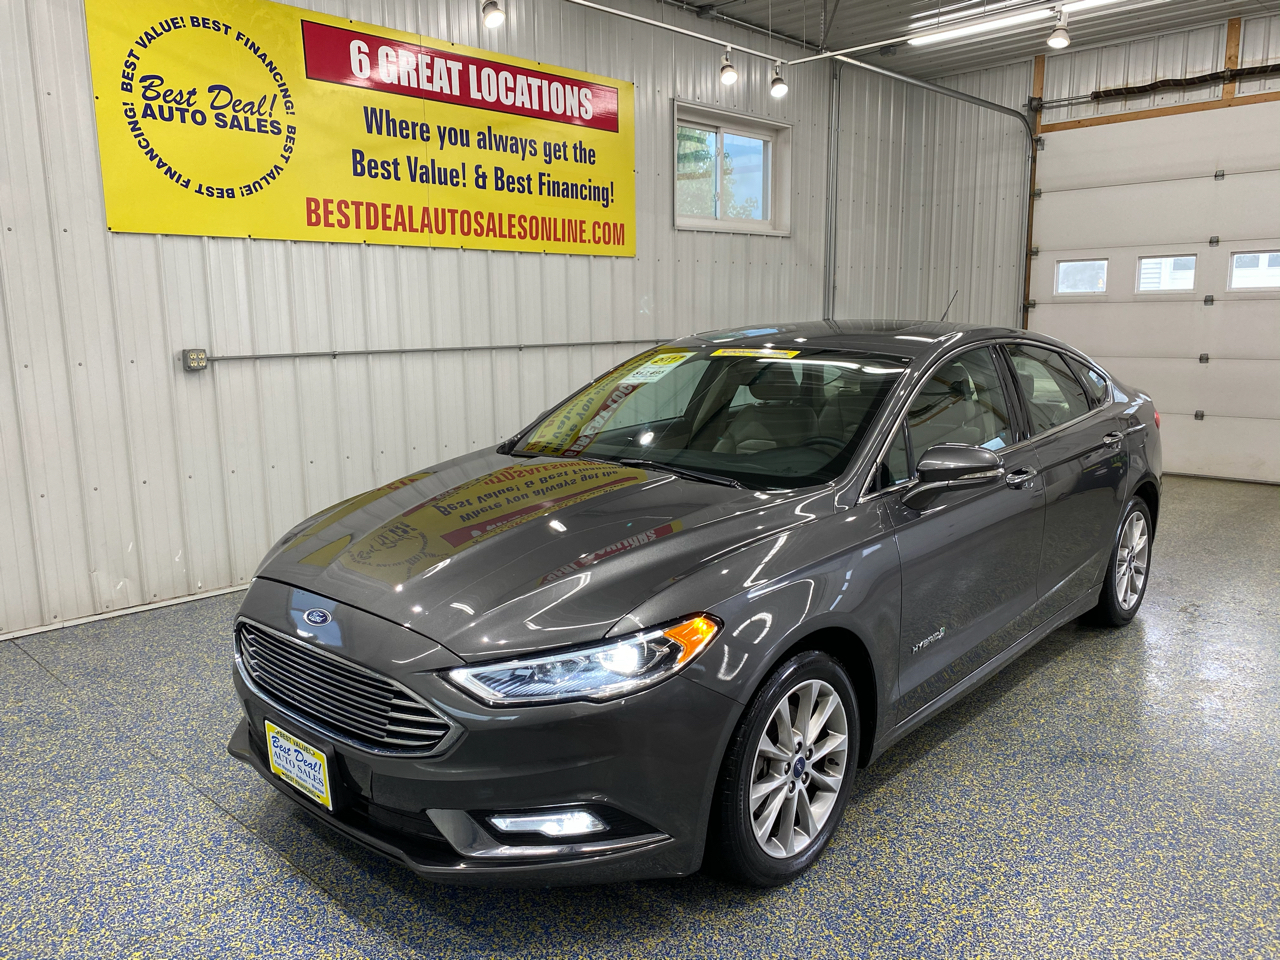 Ford Fusion Hybrid 2017 for Sale in Angola, IN